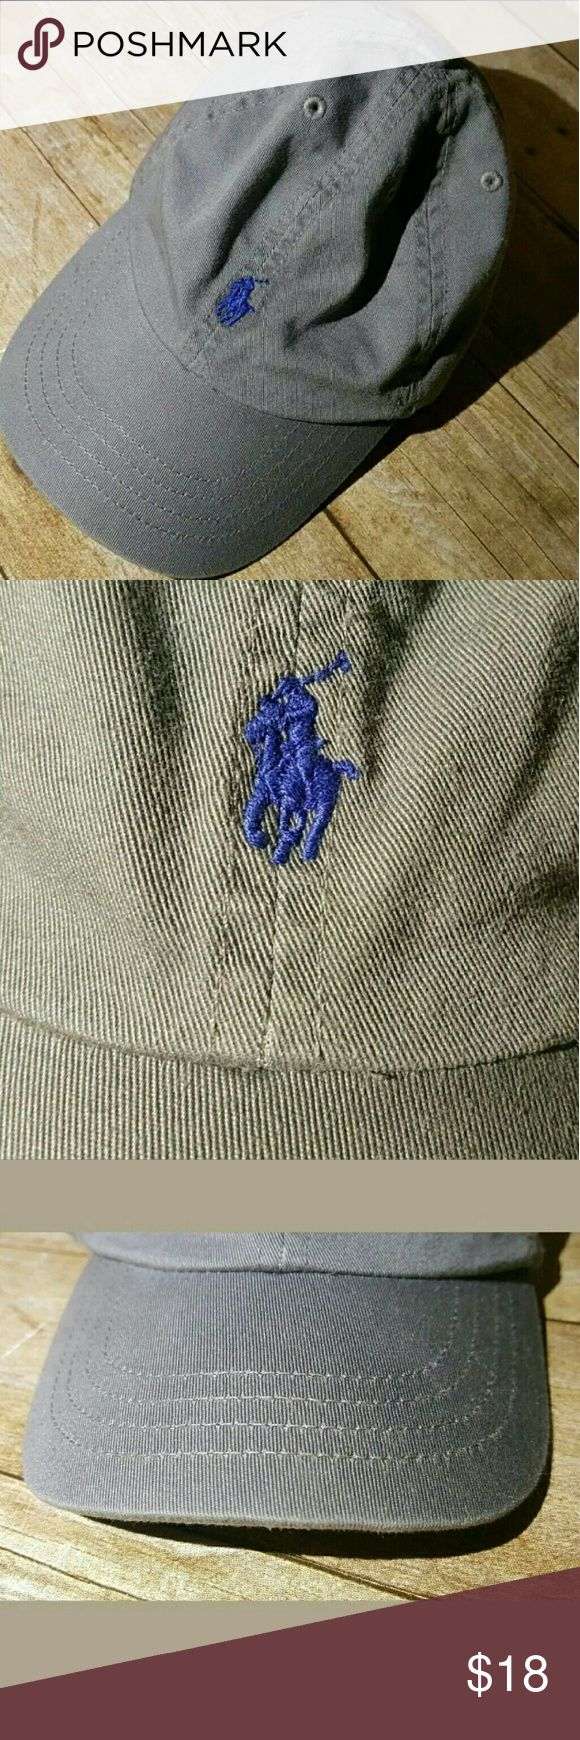 POLO Ralph Lauren Gray Adjustable Youth Hat 4-7 yr This is a super cute POLO Ralph Lauren Gray Adjustable Youth Hat 4-7 yrs. EUC. 100% Cotton. Polo by Ralph Lauren Accessories Hats